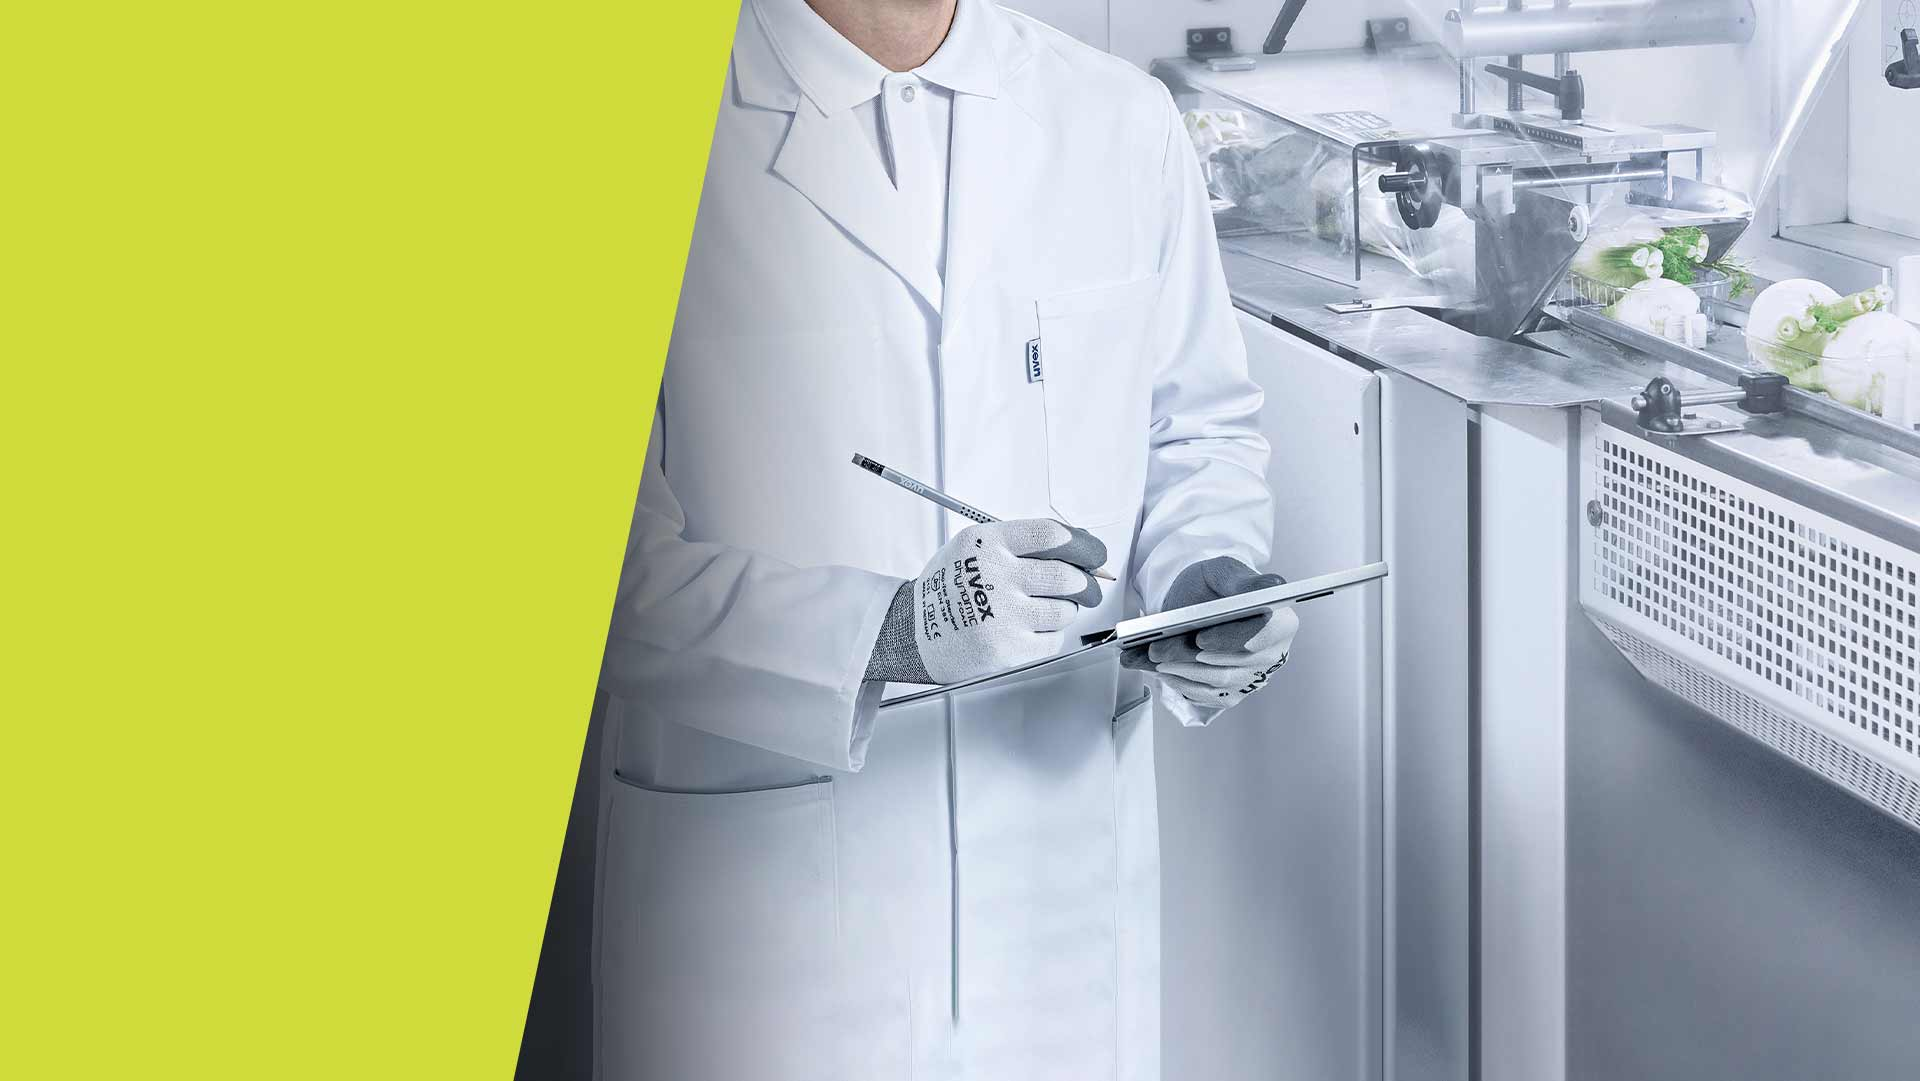 Food standard approved safety gloves